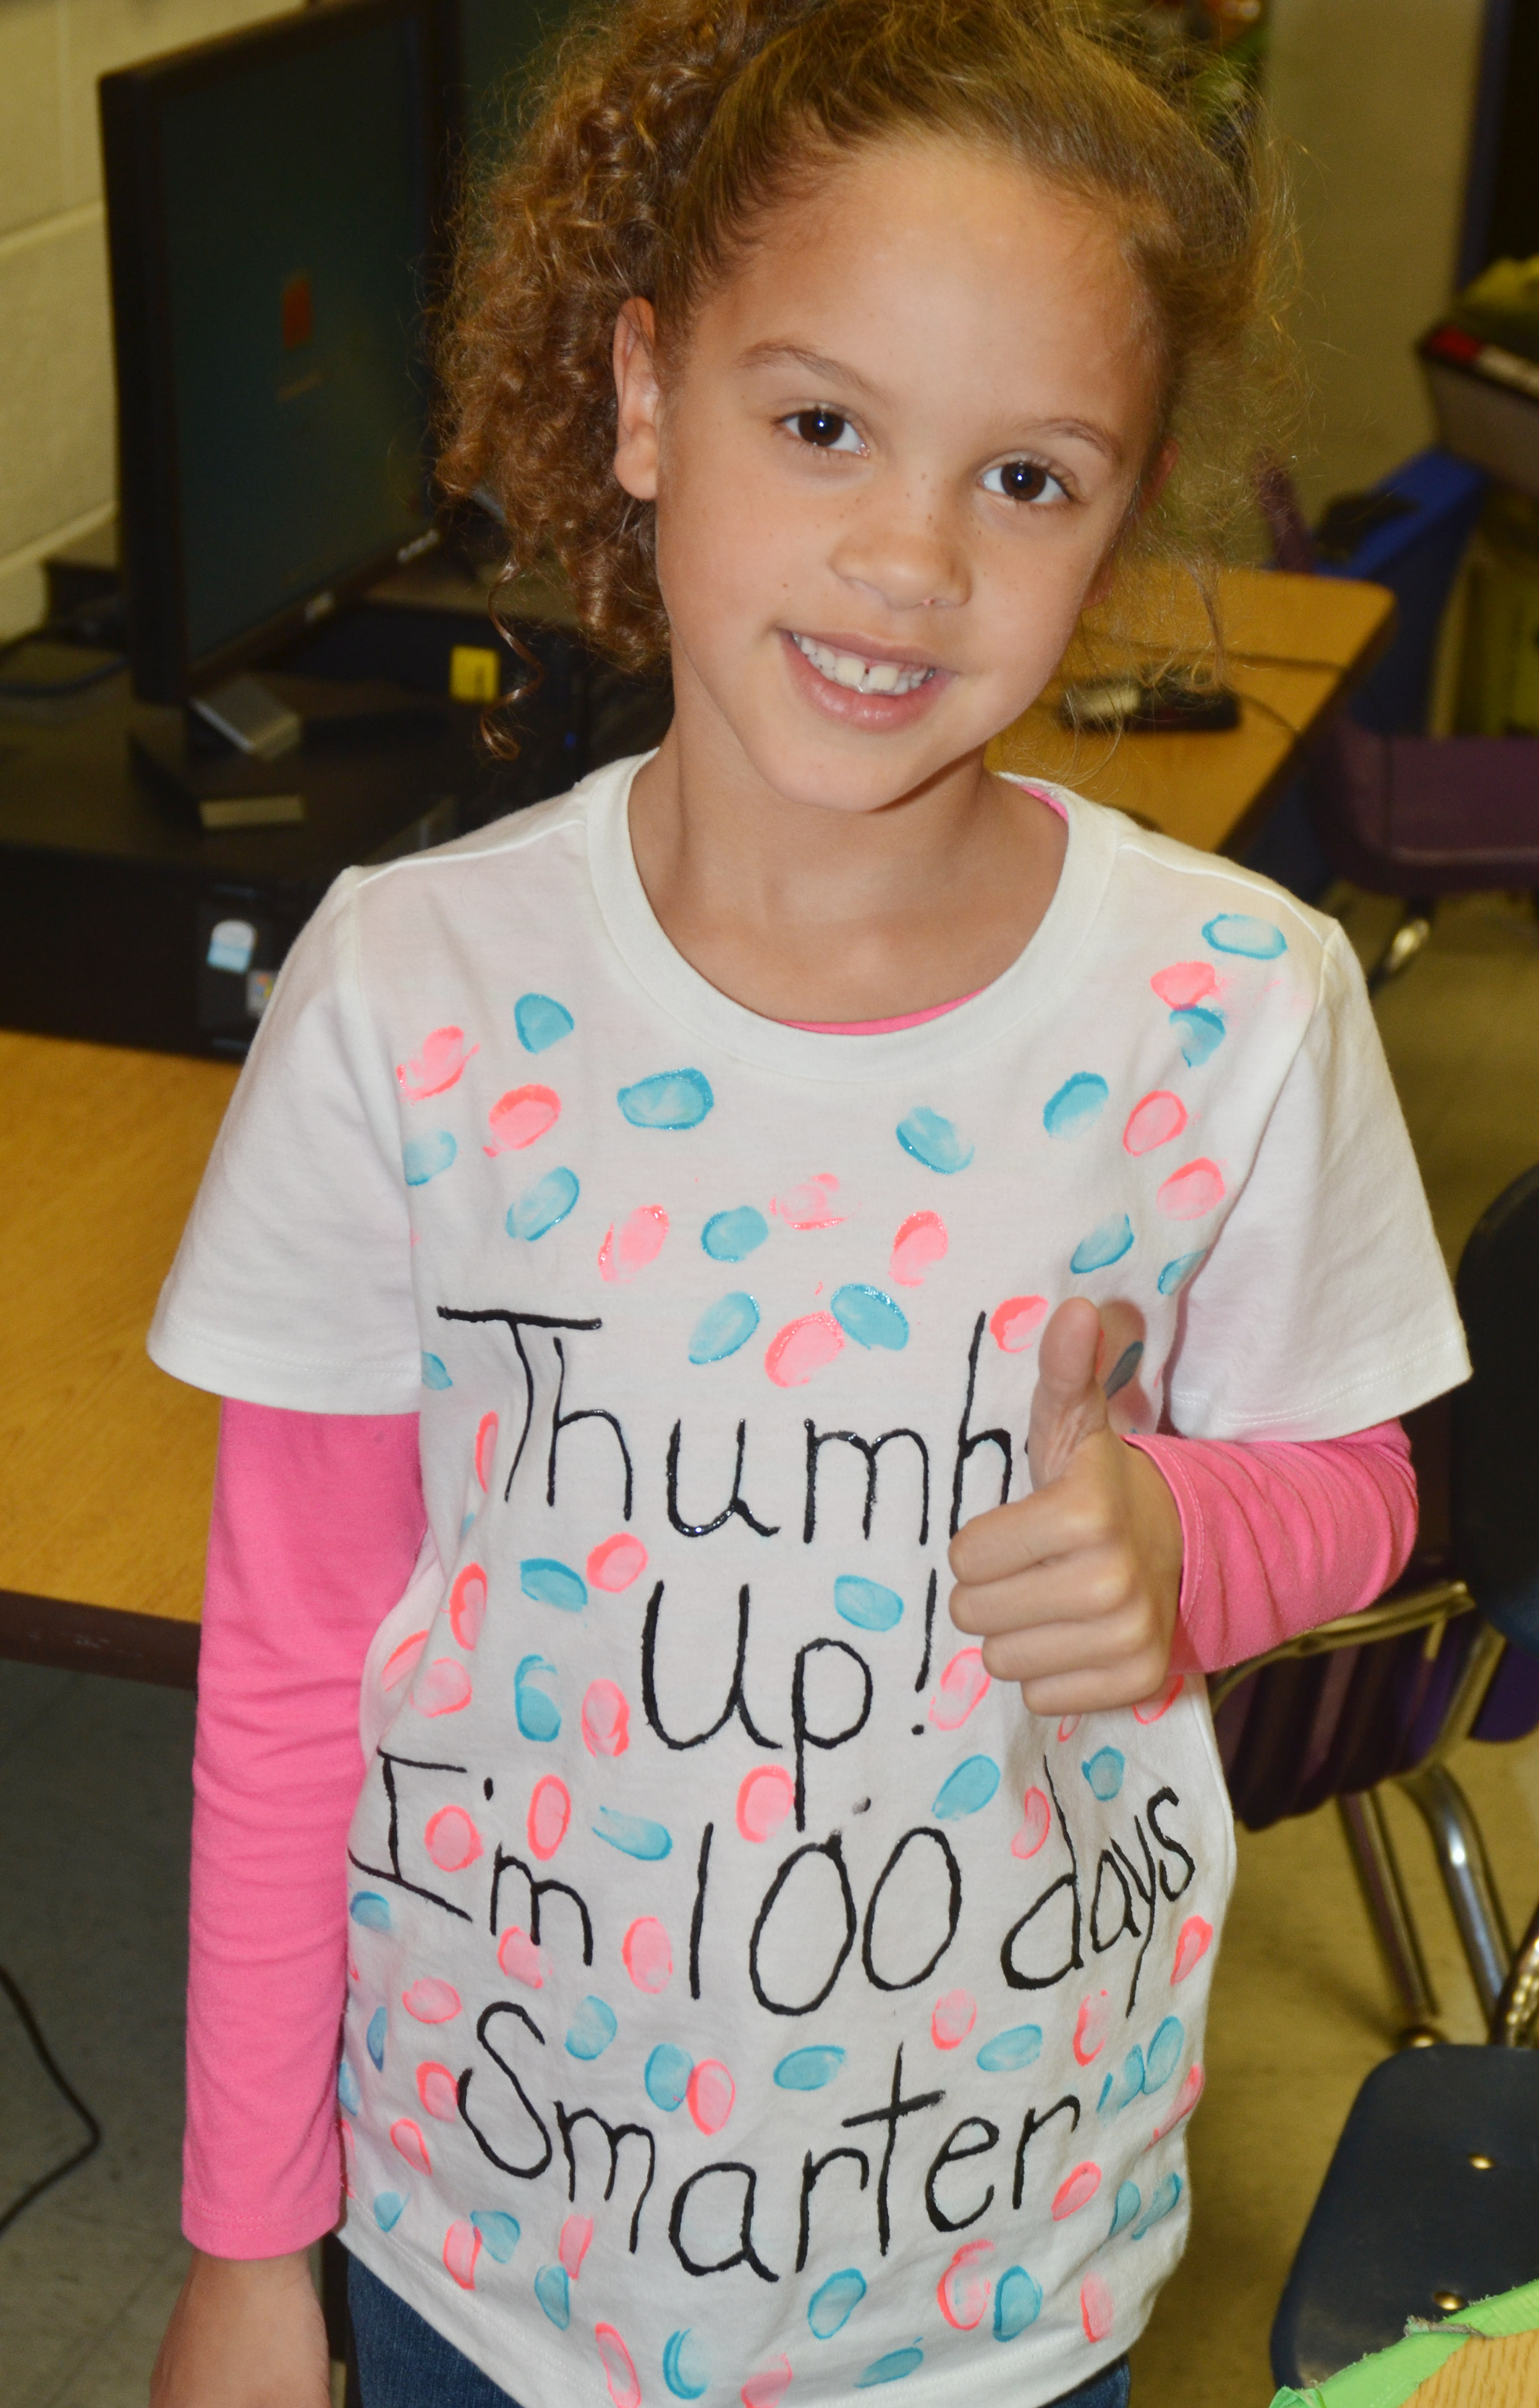 CES first-grader Keiava Thompson is 100 days smarter.